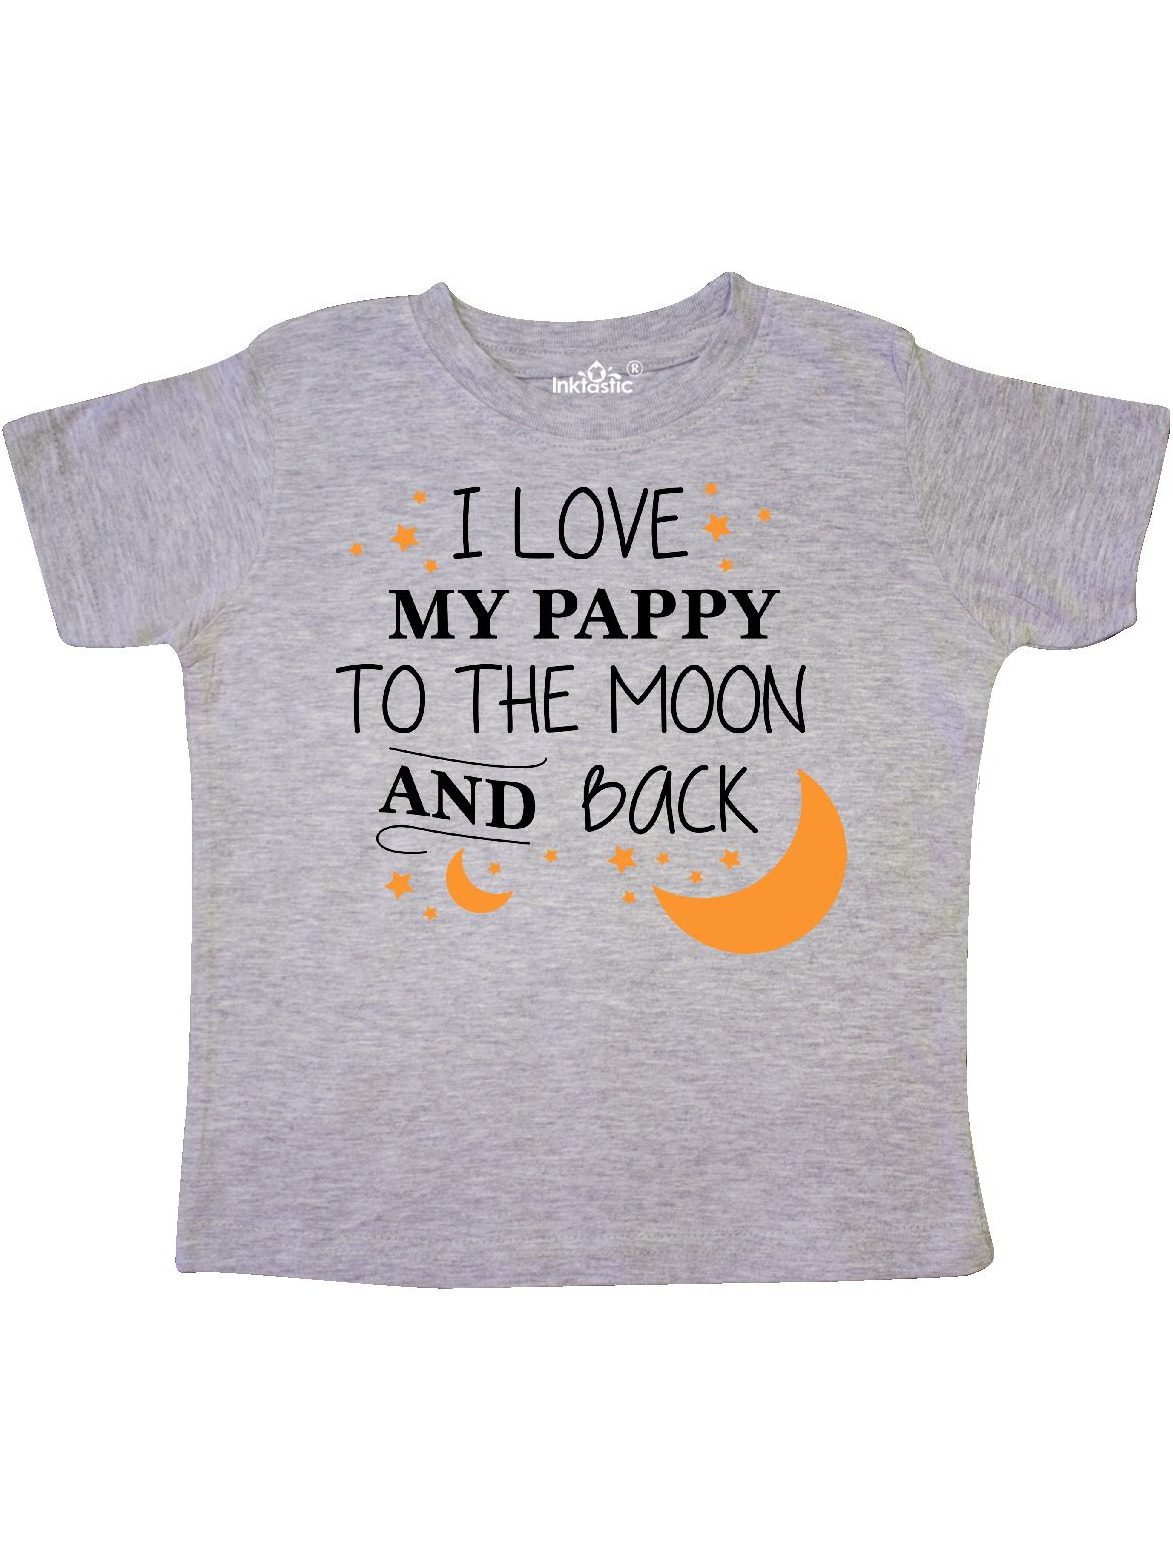 I love my Daddy to the moon and back T-Shirt Top Tee Children Kids Dad Gift